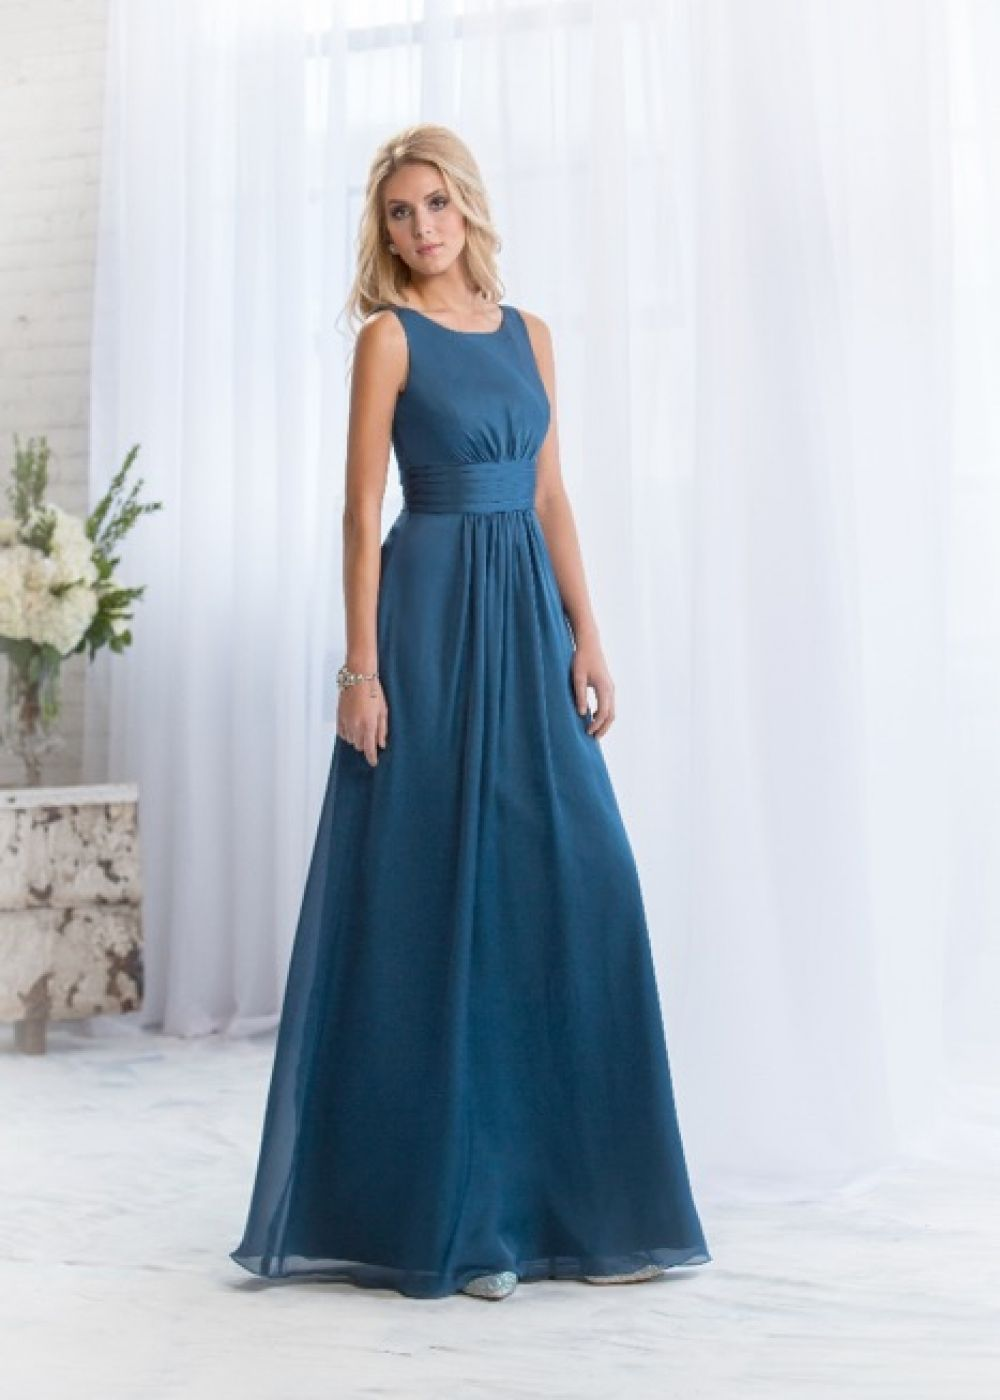 Jasmine l164066 bridesmaids groomsmen pinterest wedding bridesmaid dresses bucks designer bridesmaid dresses from leading international labels such as ebony rose kelsey rose belsoi from sapphire dresses ombrellifo Choice Image